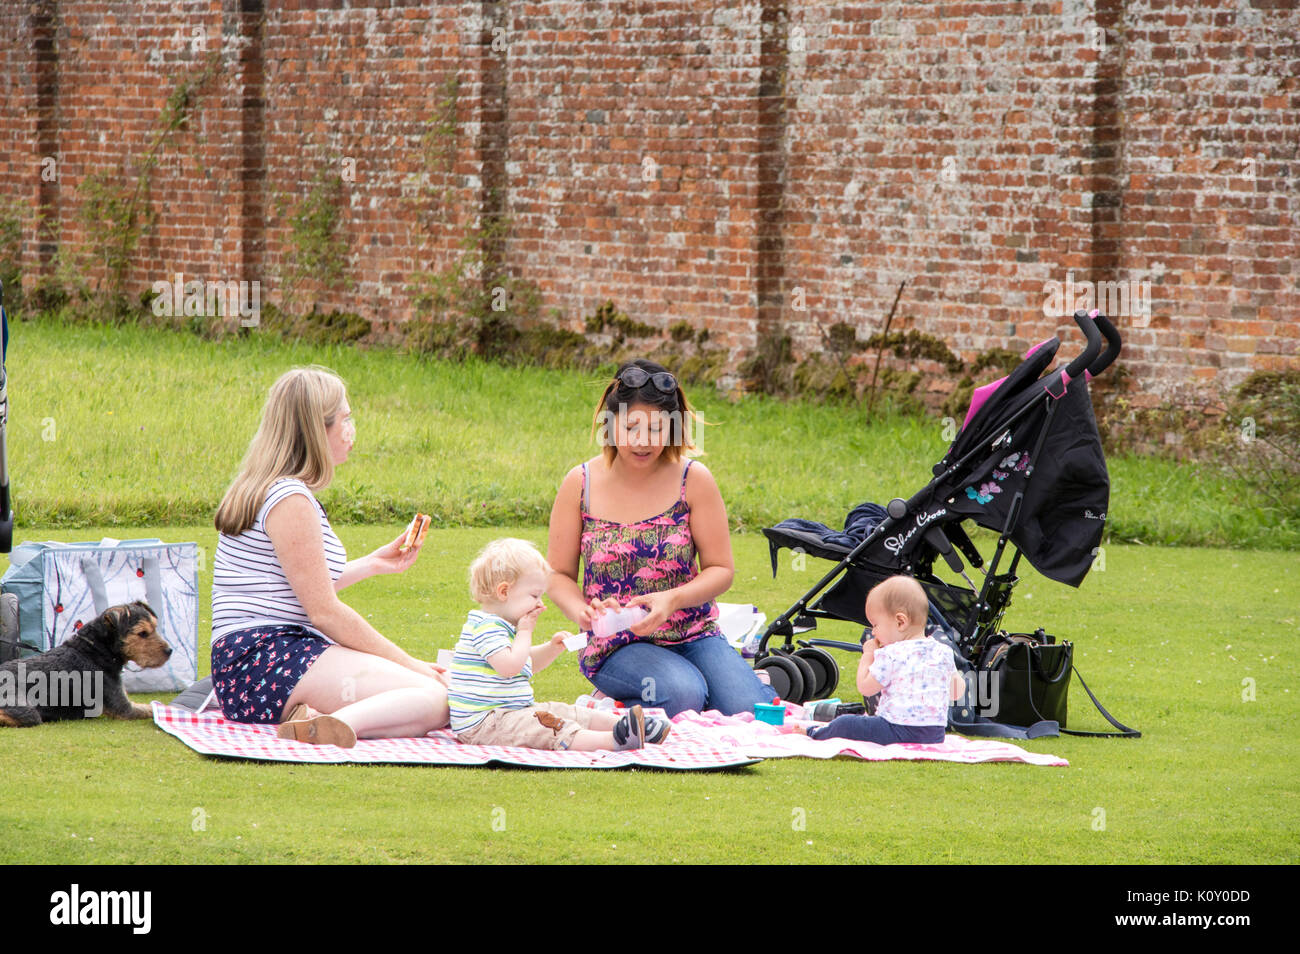 Two mothers with babies having a summer picnic, England, UK - Stock Image